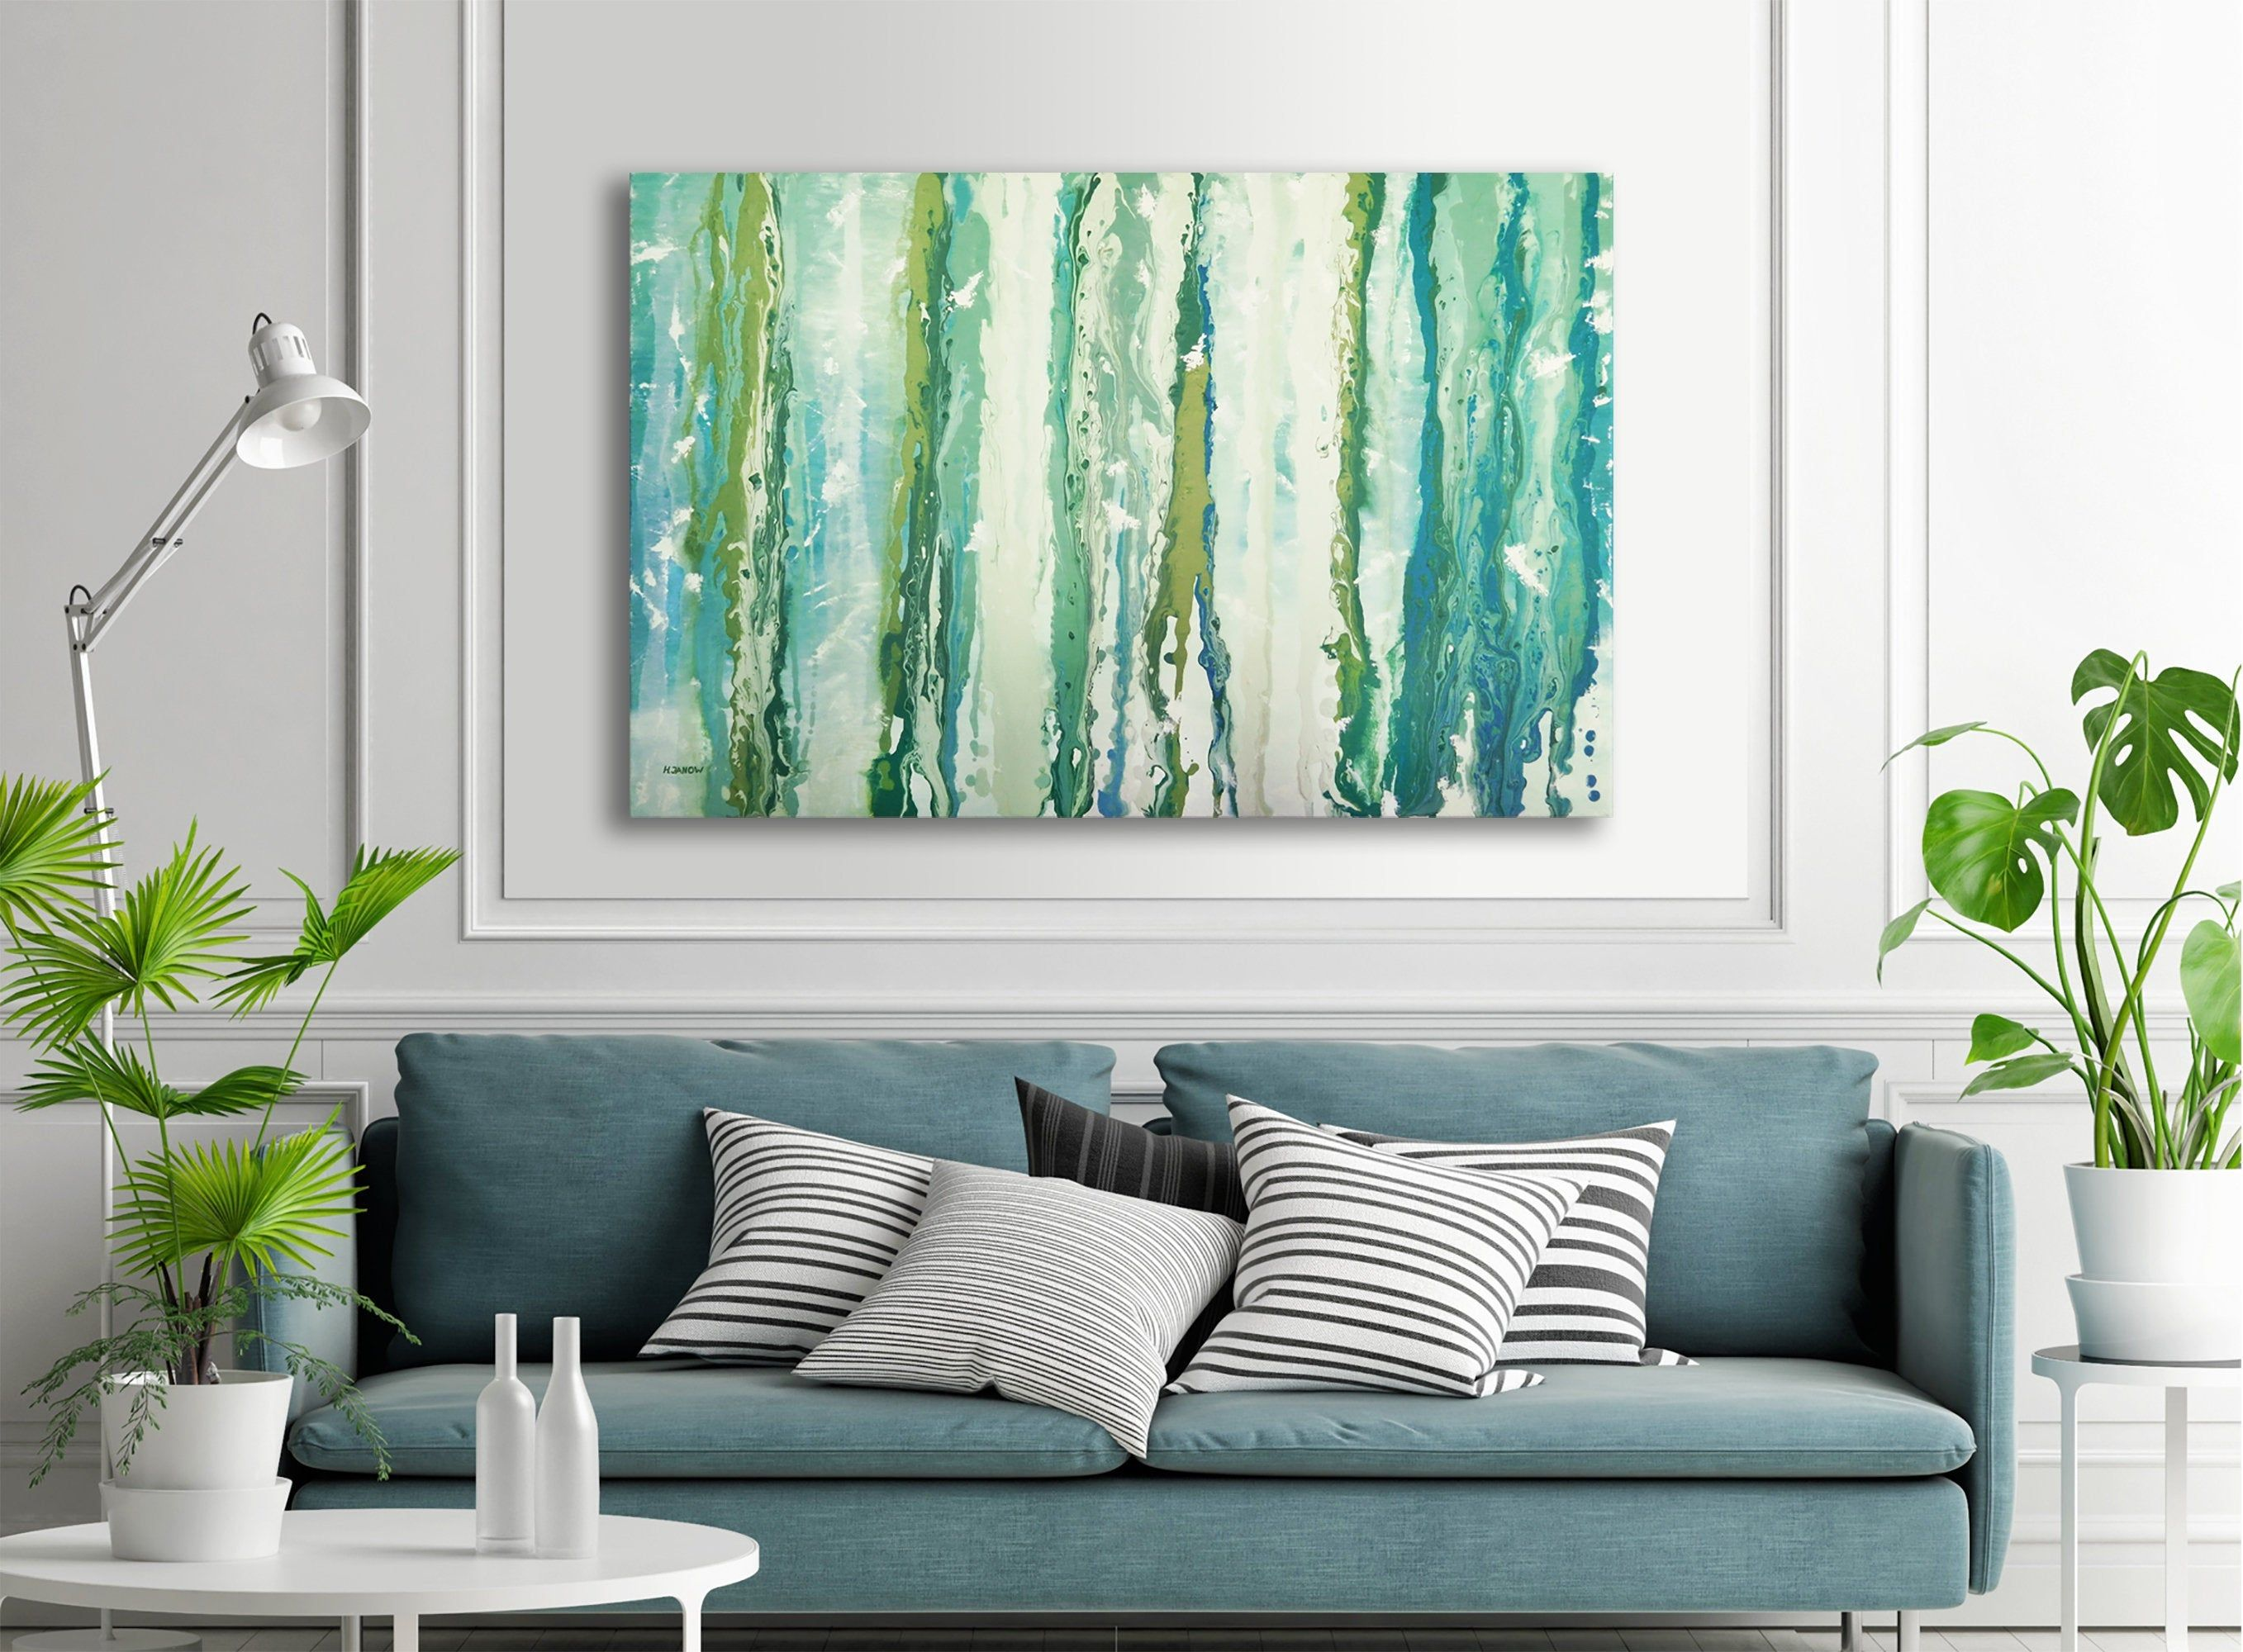 Turquoise Wall Art Abstract Painting Acrylic Pour Art Large Etsy Turquoise Wall Art Teal Wall Art Modern Room Decor #teal #wall #art #for #living #room